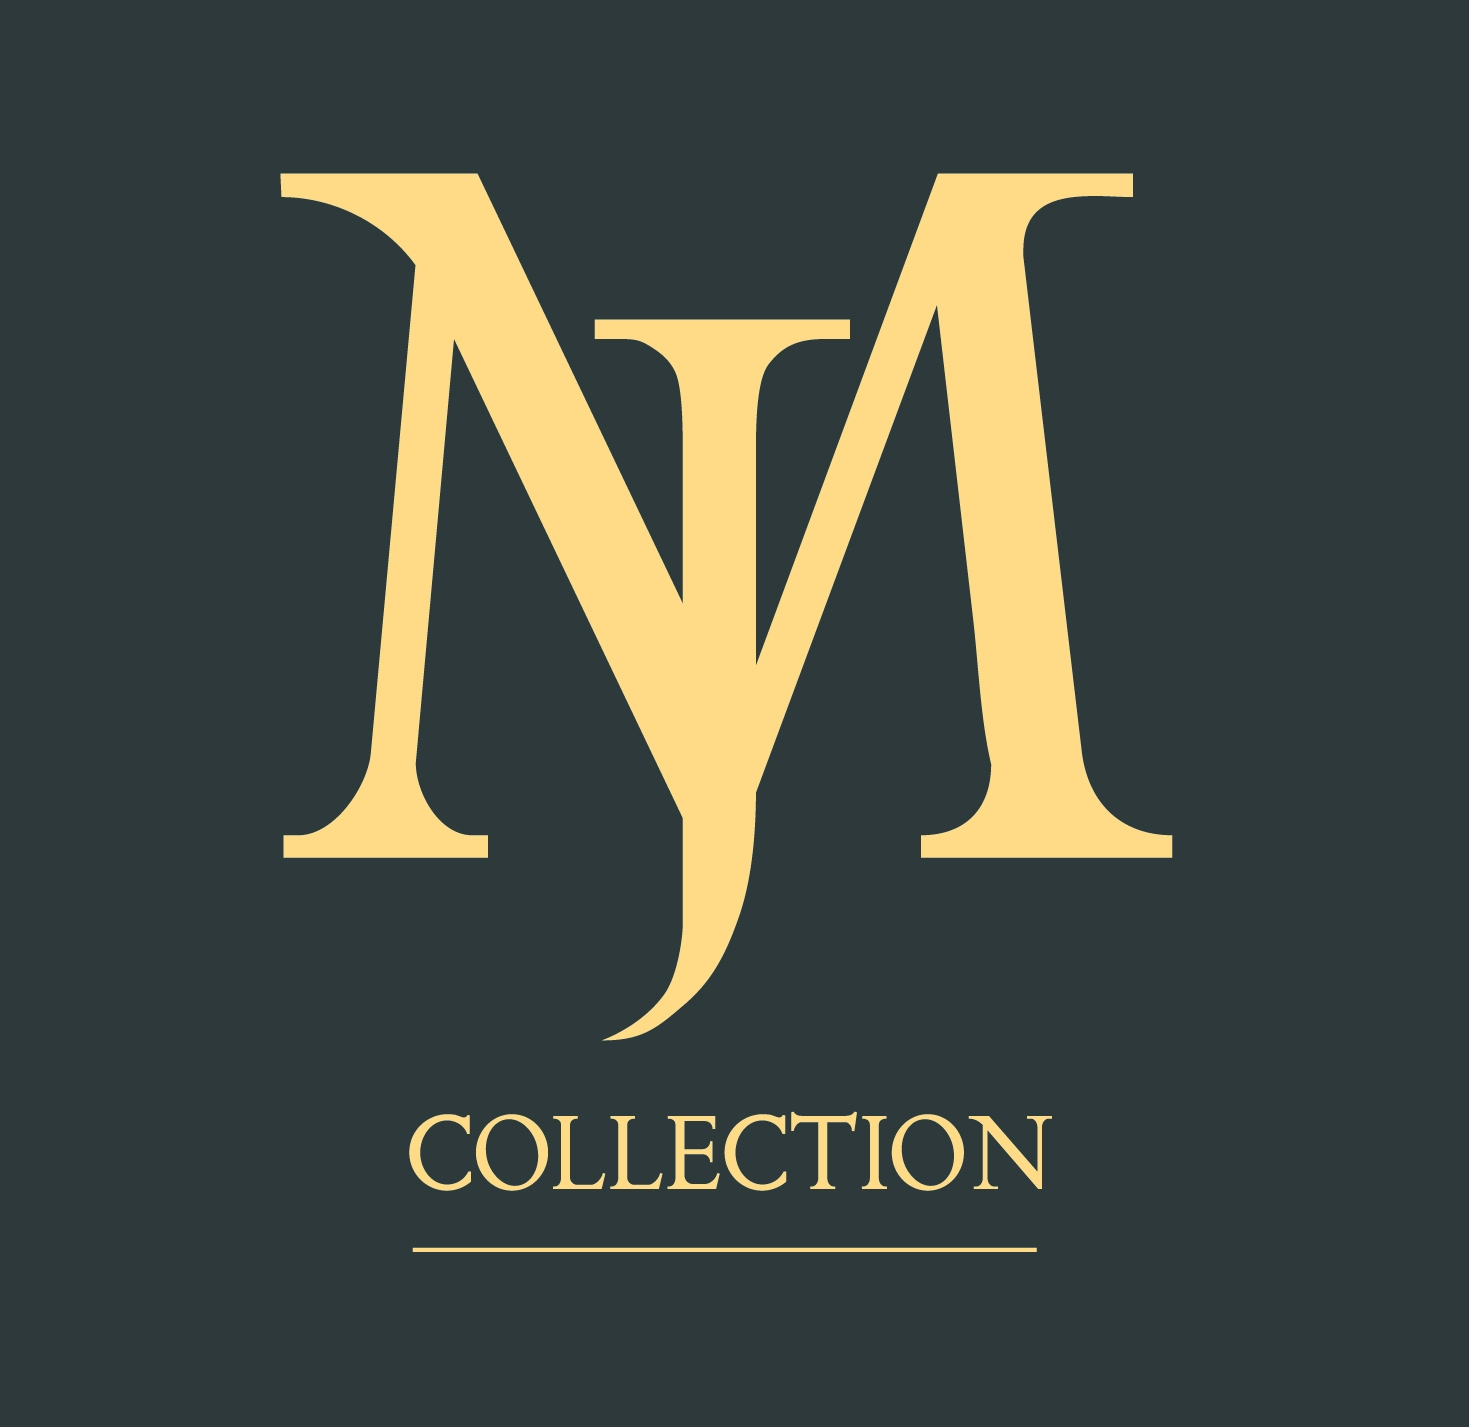 MJ Collection